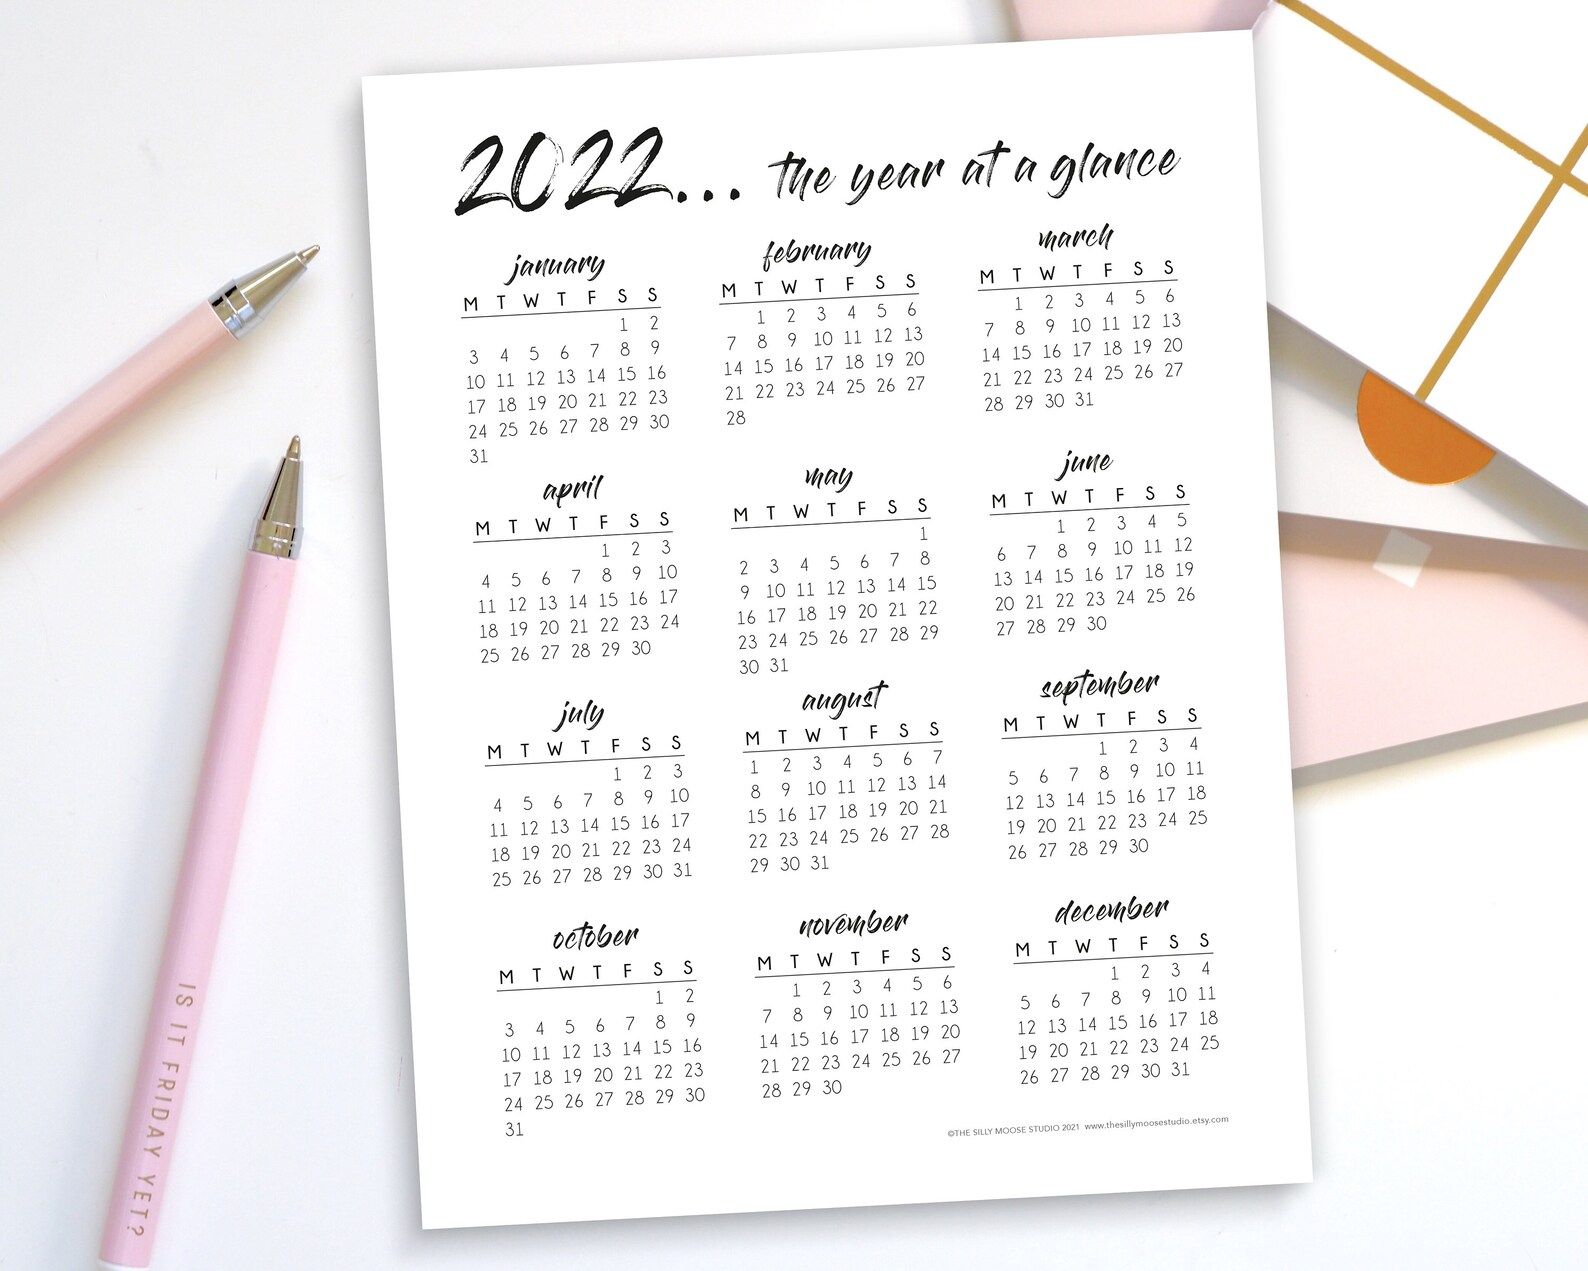 2022 Yearly Calendar Printable Monday Start Year At A | Etsy with What Date Does Gcu Start 2022